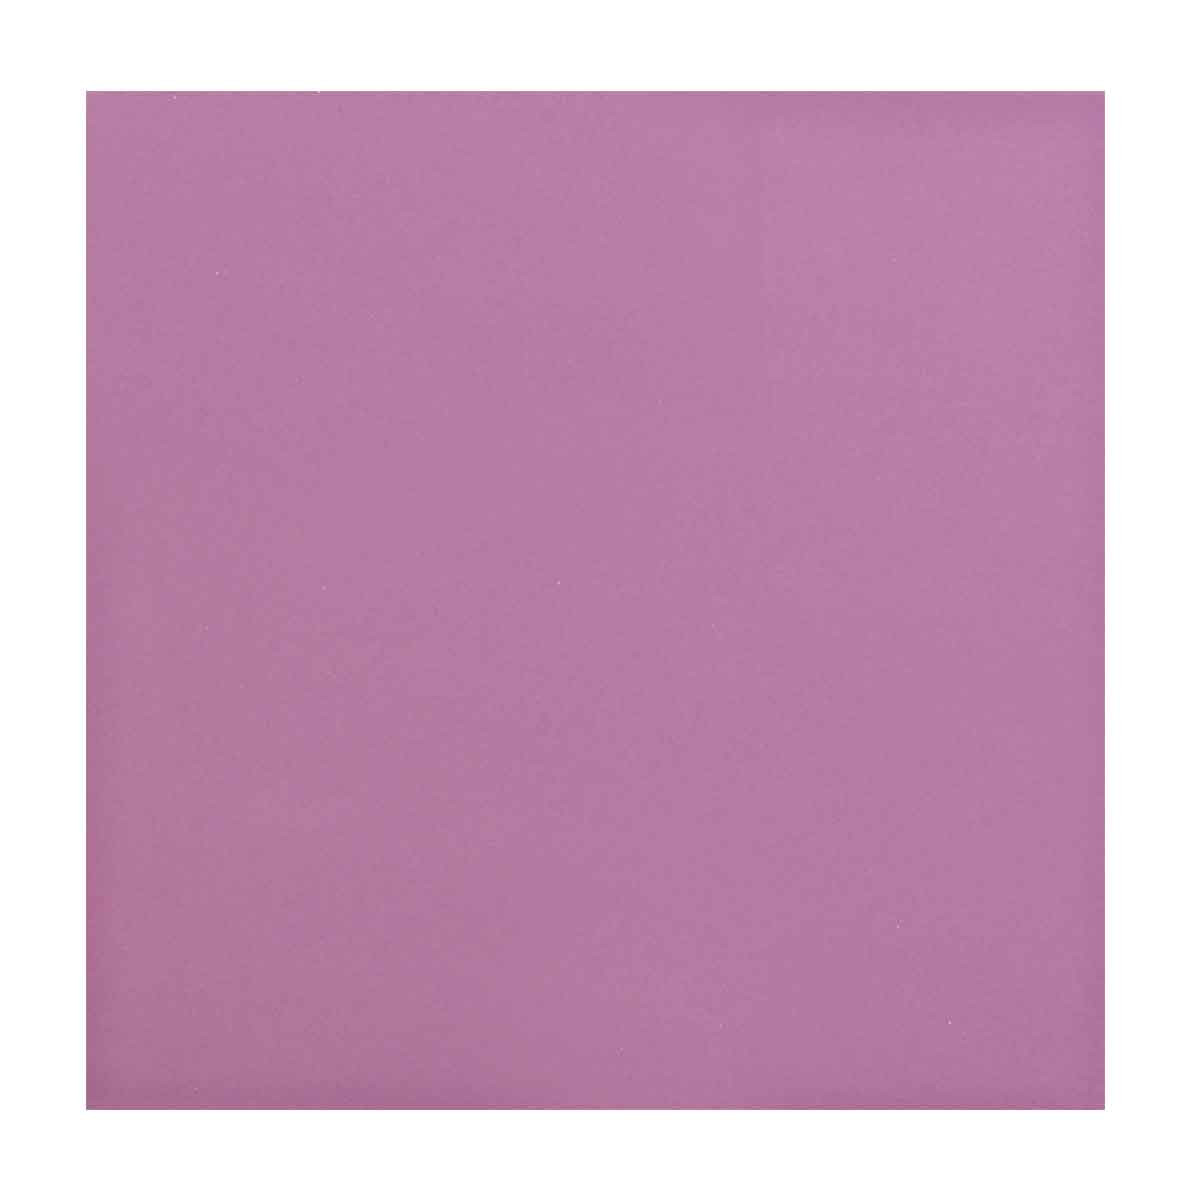 Pink tiles for bathrooms kitchens buy online british ceramic purples orchid gloss wall british ceramic tile colour compendium doublecrazyfo Images